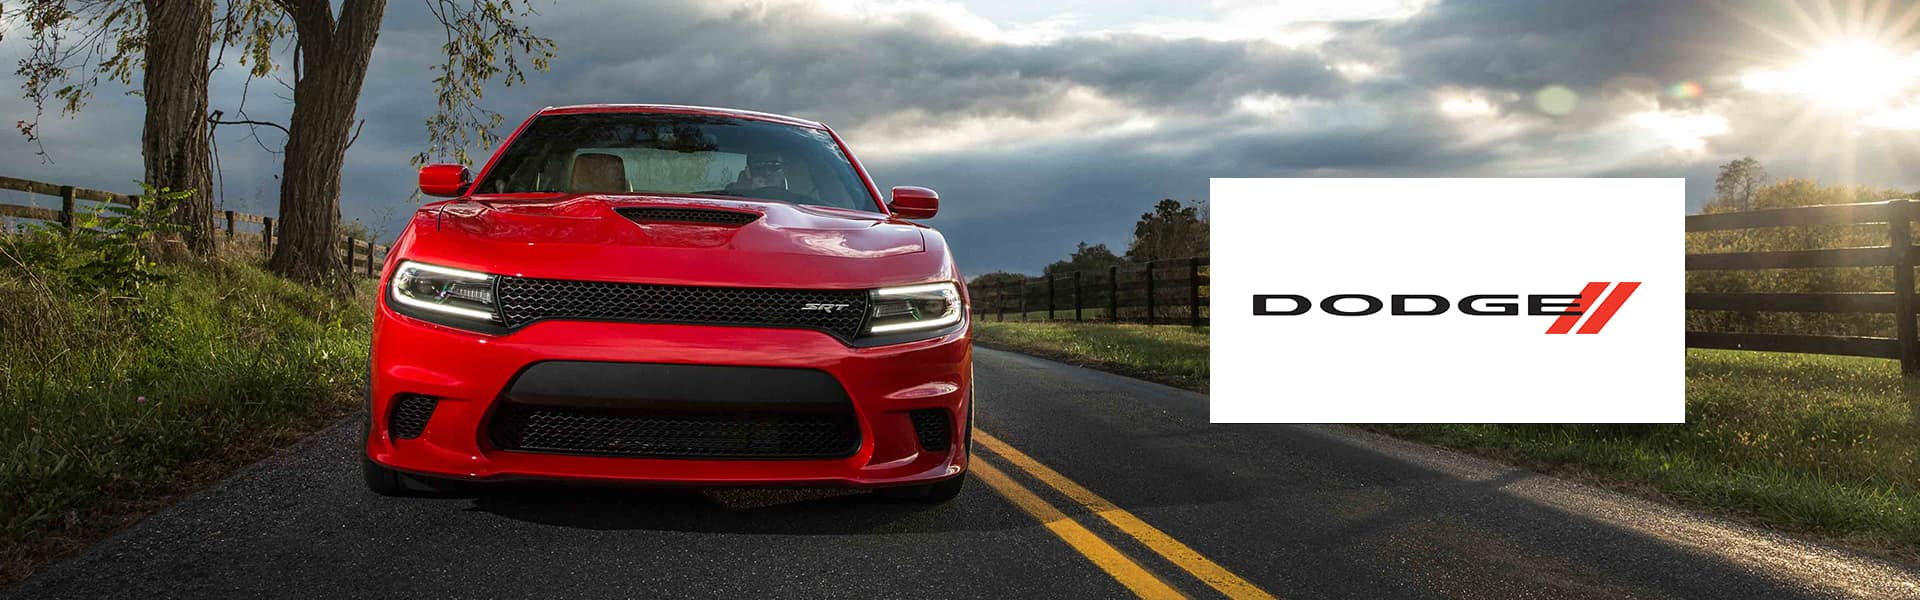 Check out our new Dodge inventory